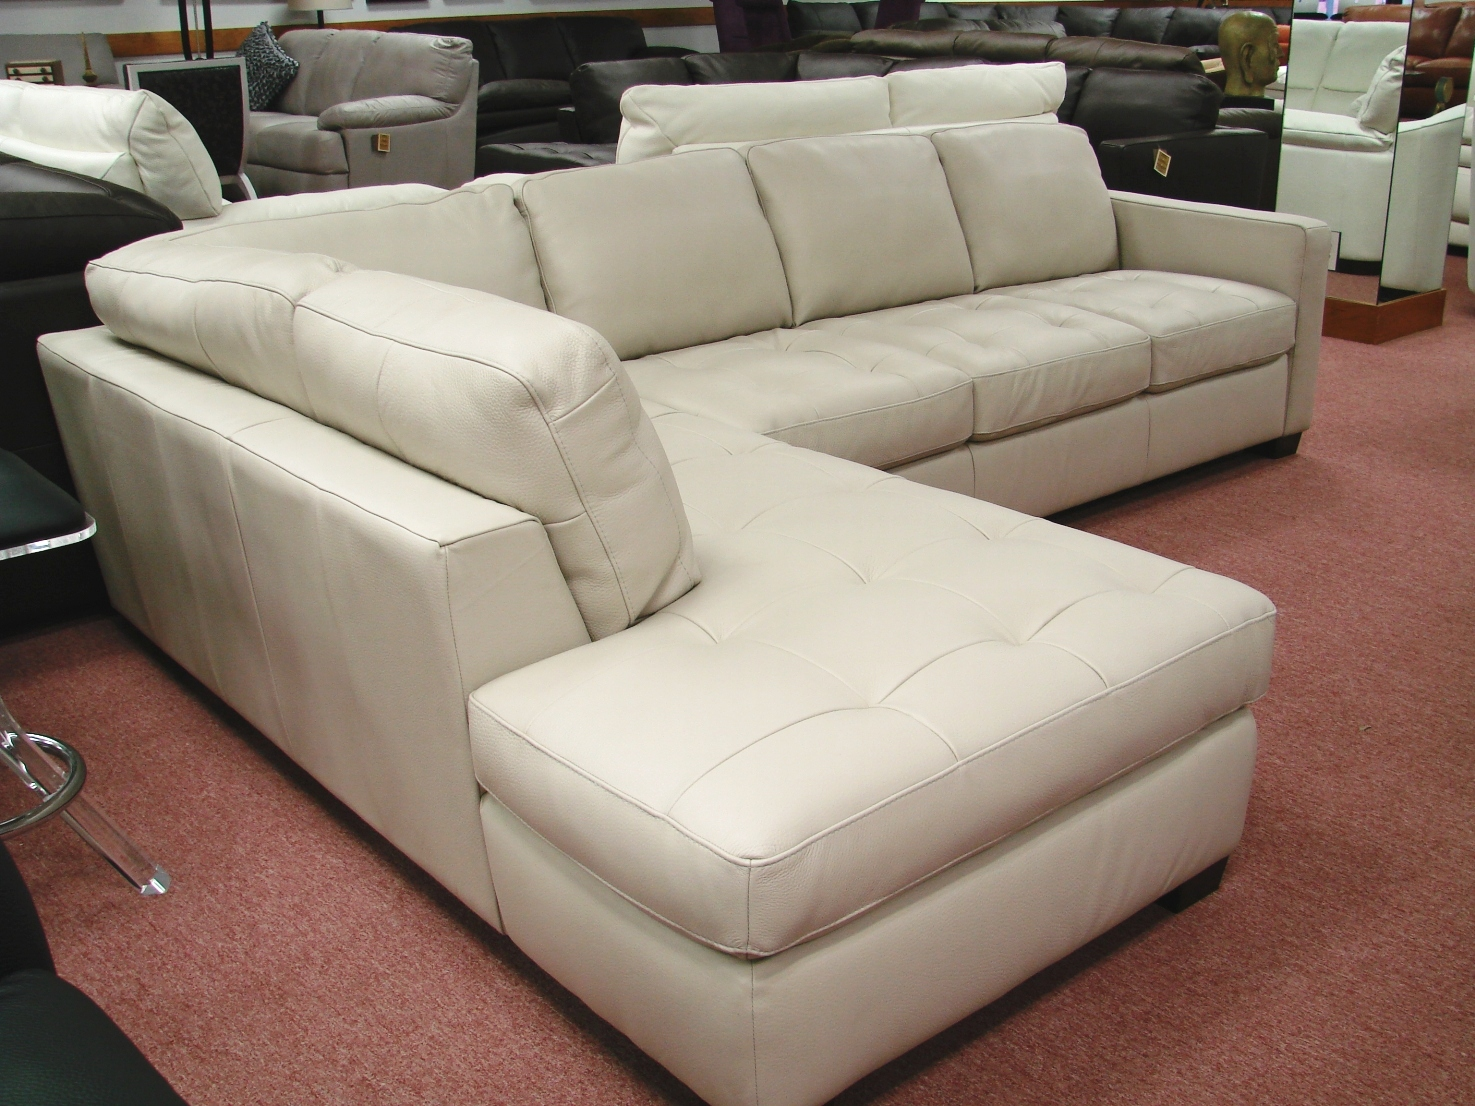 Natuzzi By Interior Concepts Furniture Natuzzi Leather Sectionals Sofas Specials President S